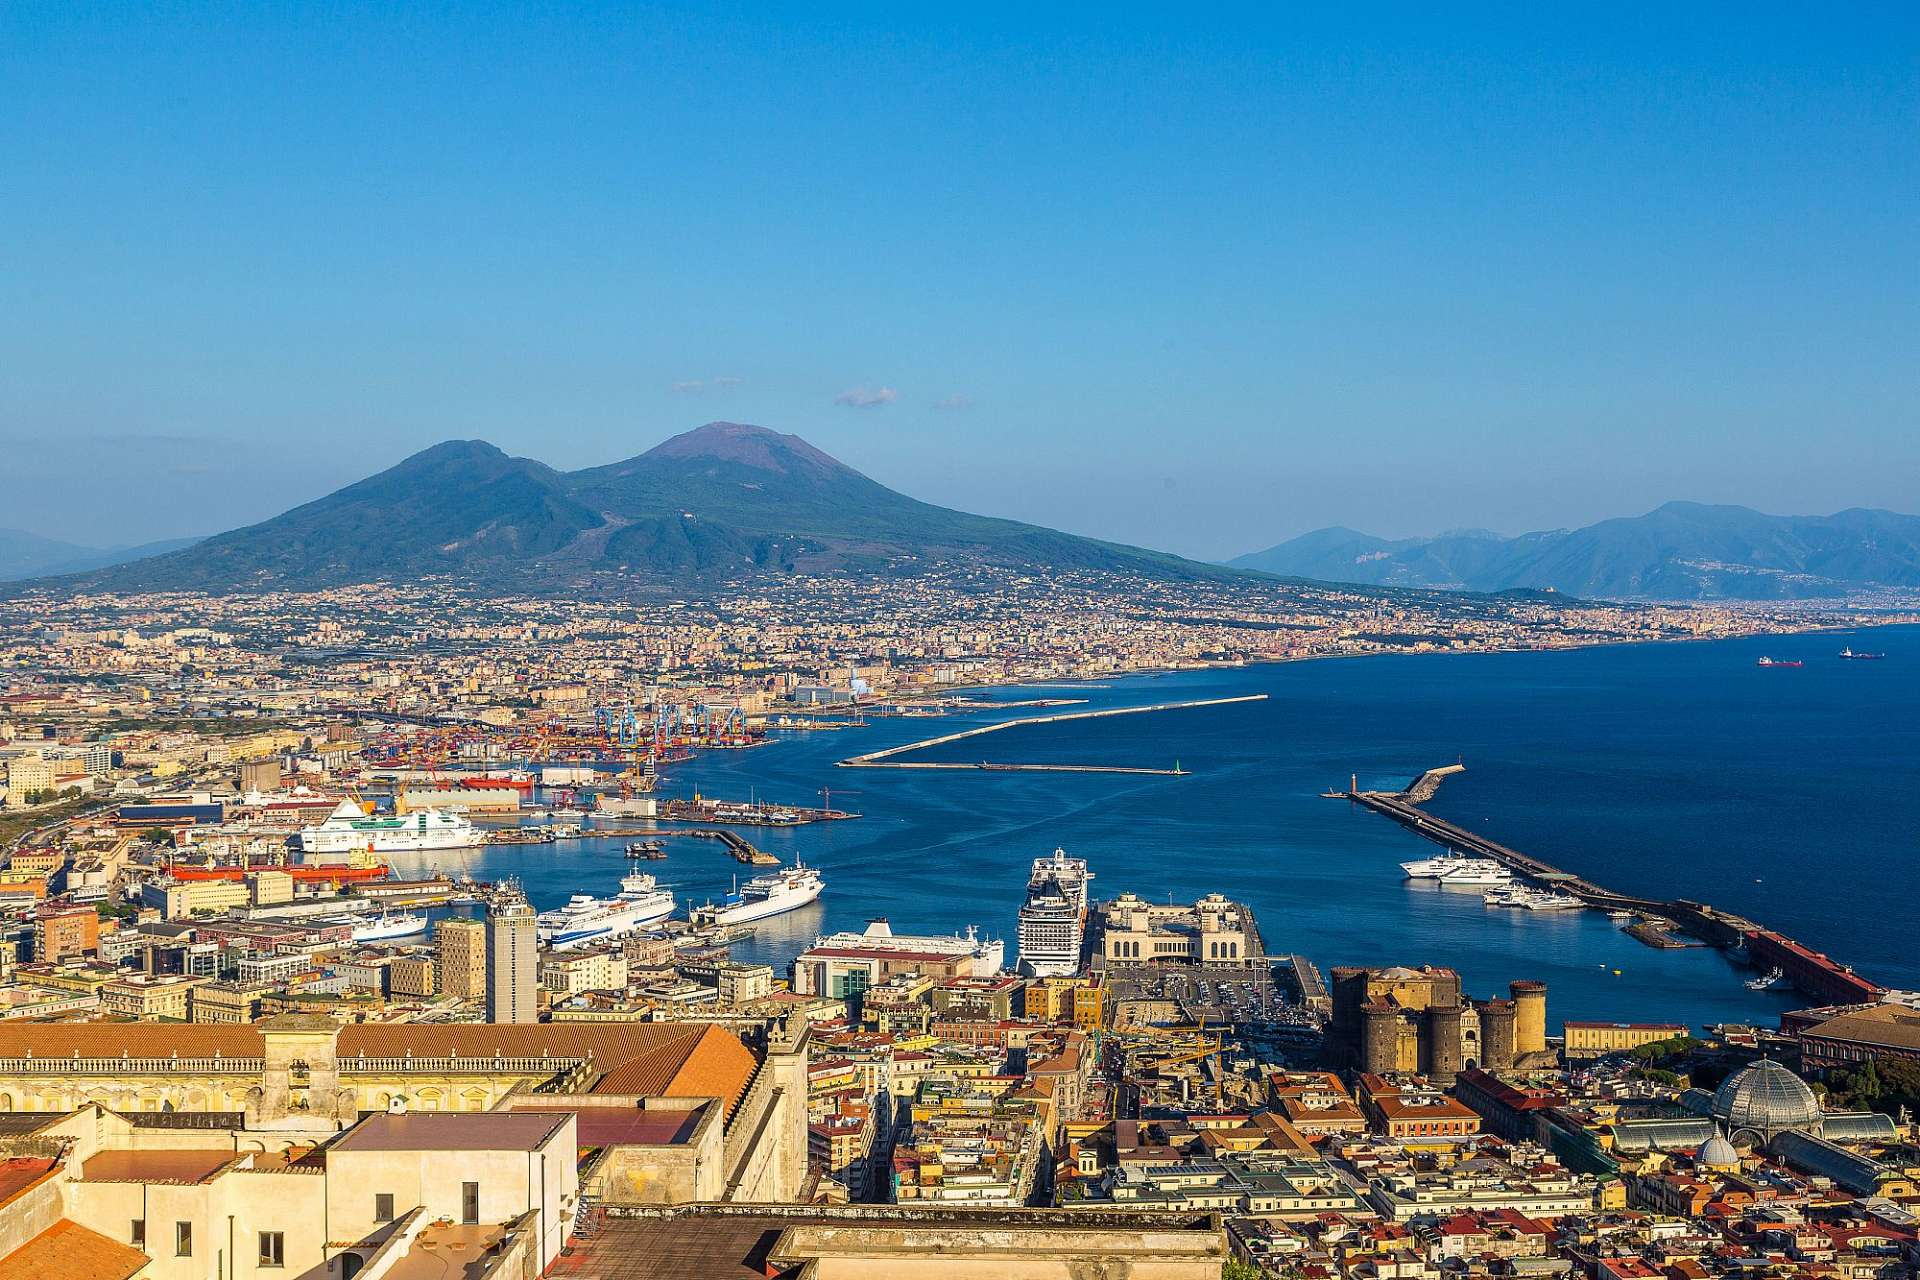 Vesuvius in the background: The view from Vomera